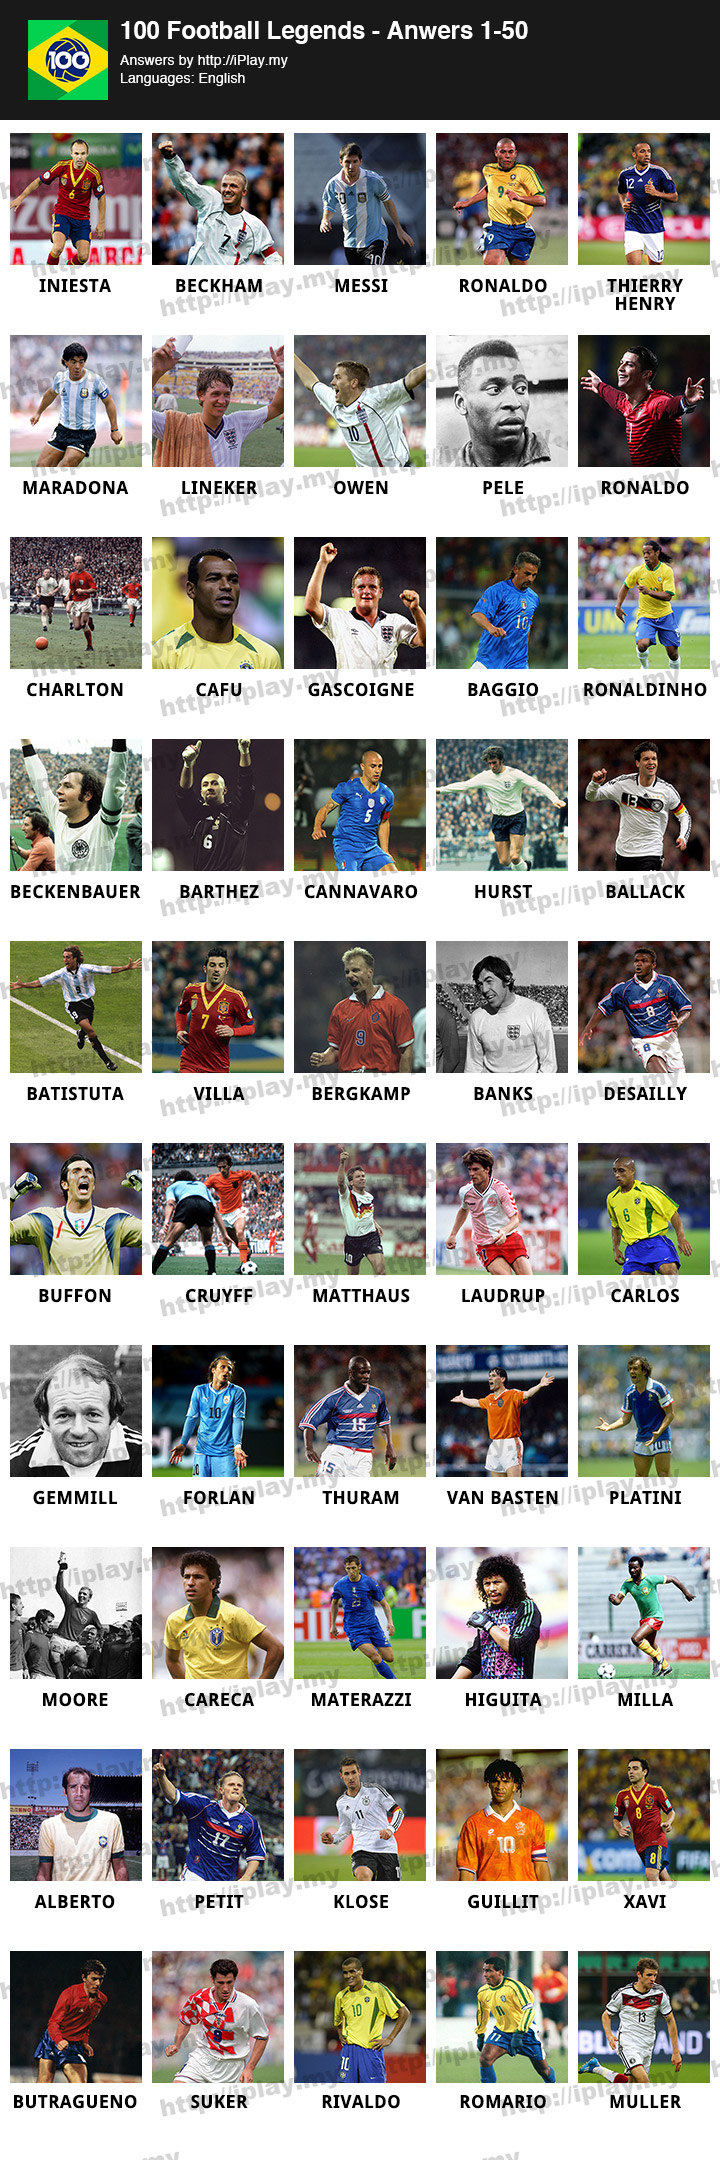 100-Football-Legends-Answers-1-50